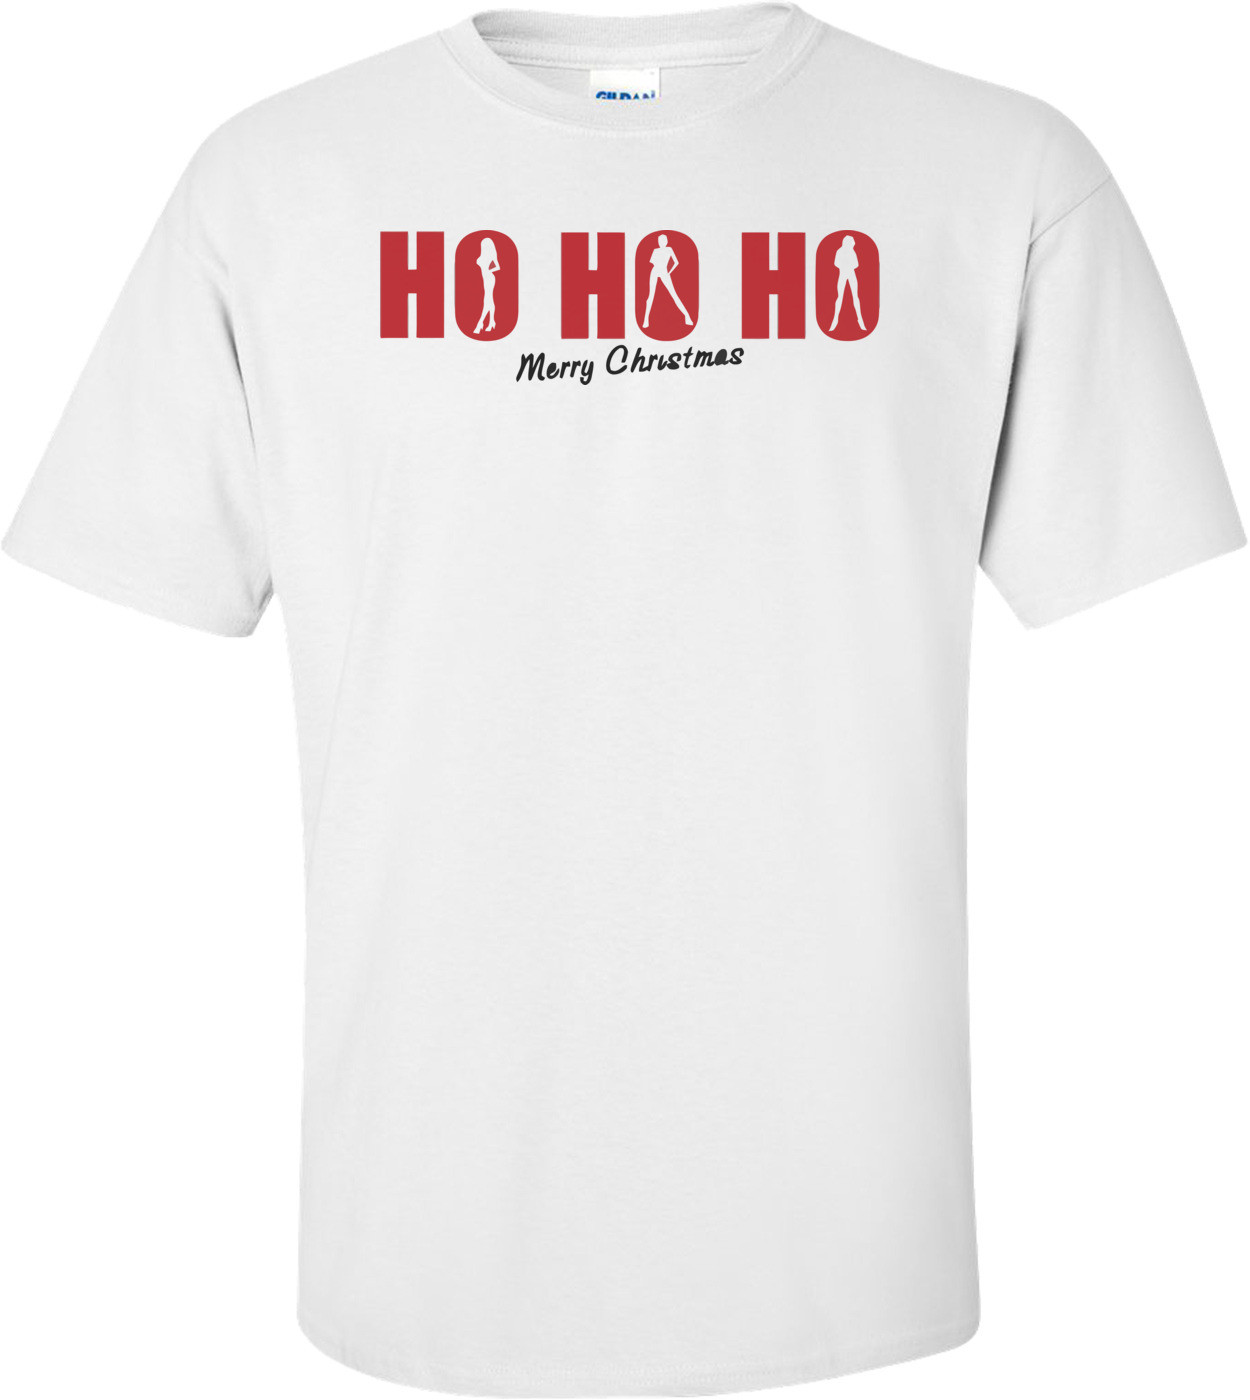 Ho Ho Ho! Merry Christmas T-shirt